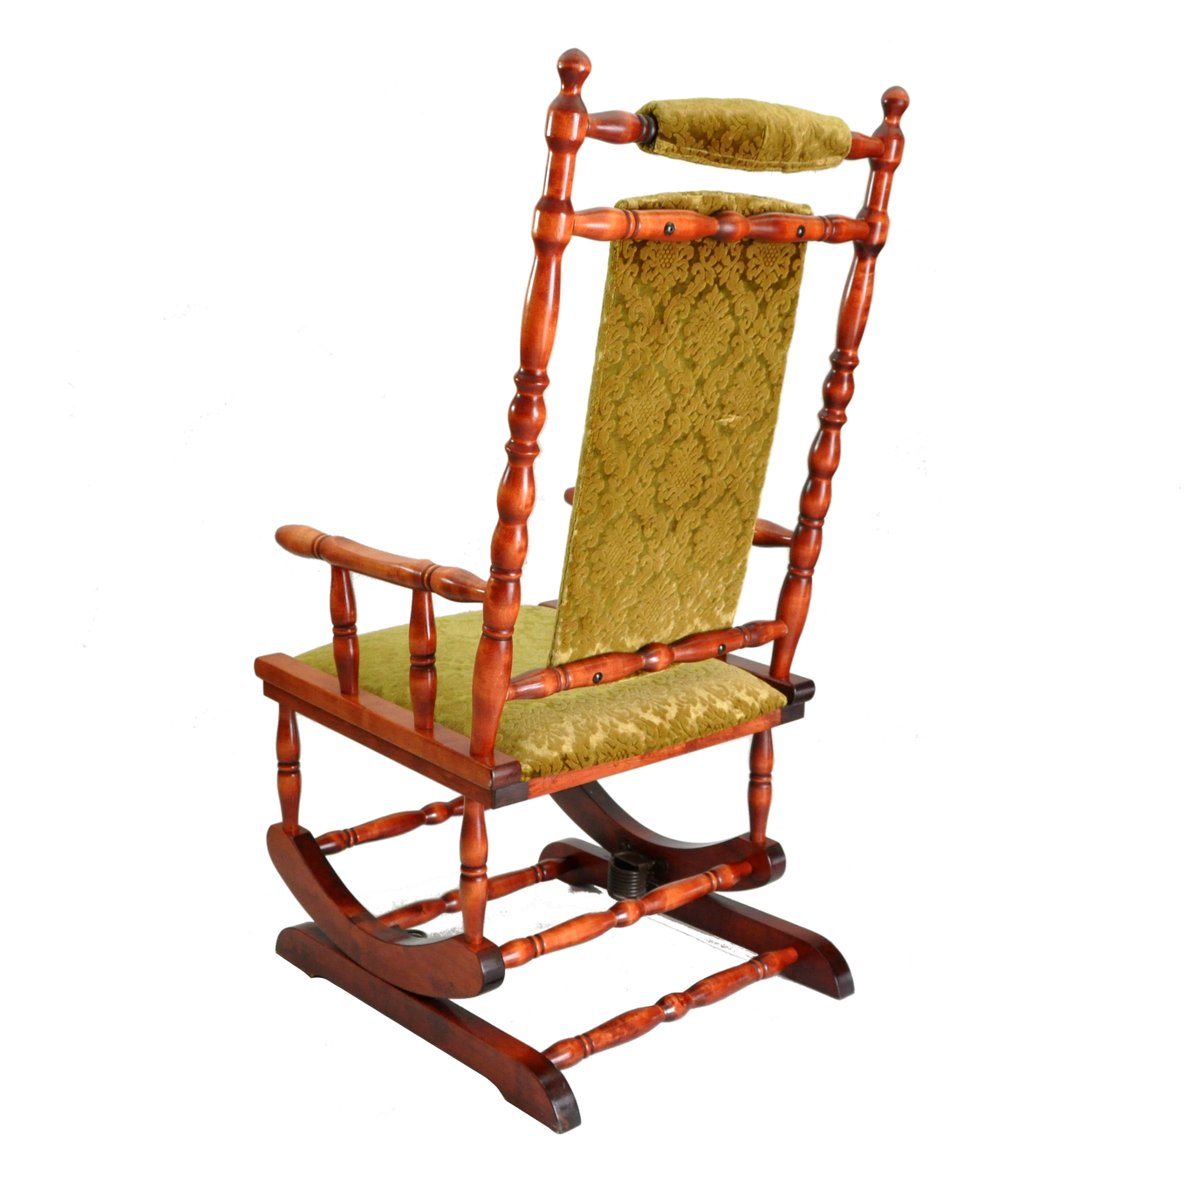 Scandinavian wooden rocking chair 1950s for sale at pamono - Scandinavian chair ...